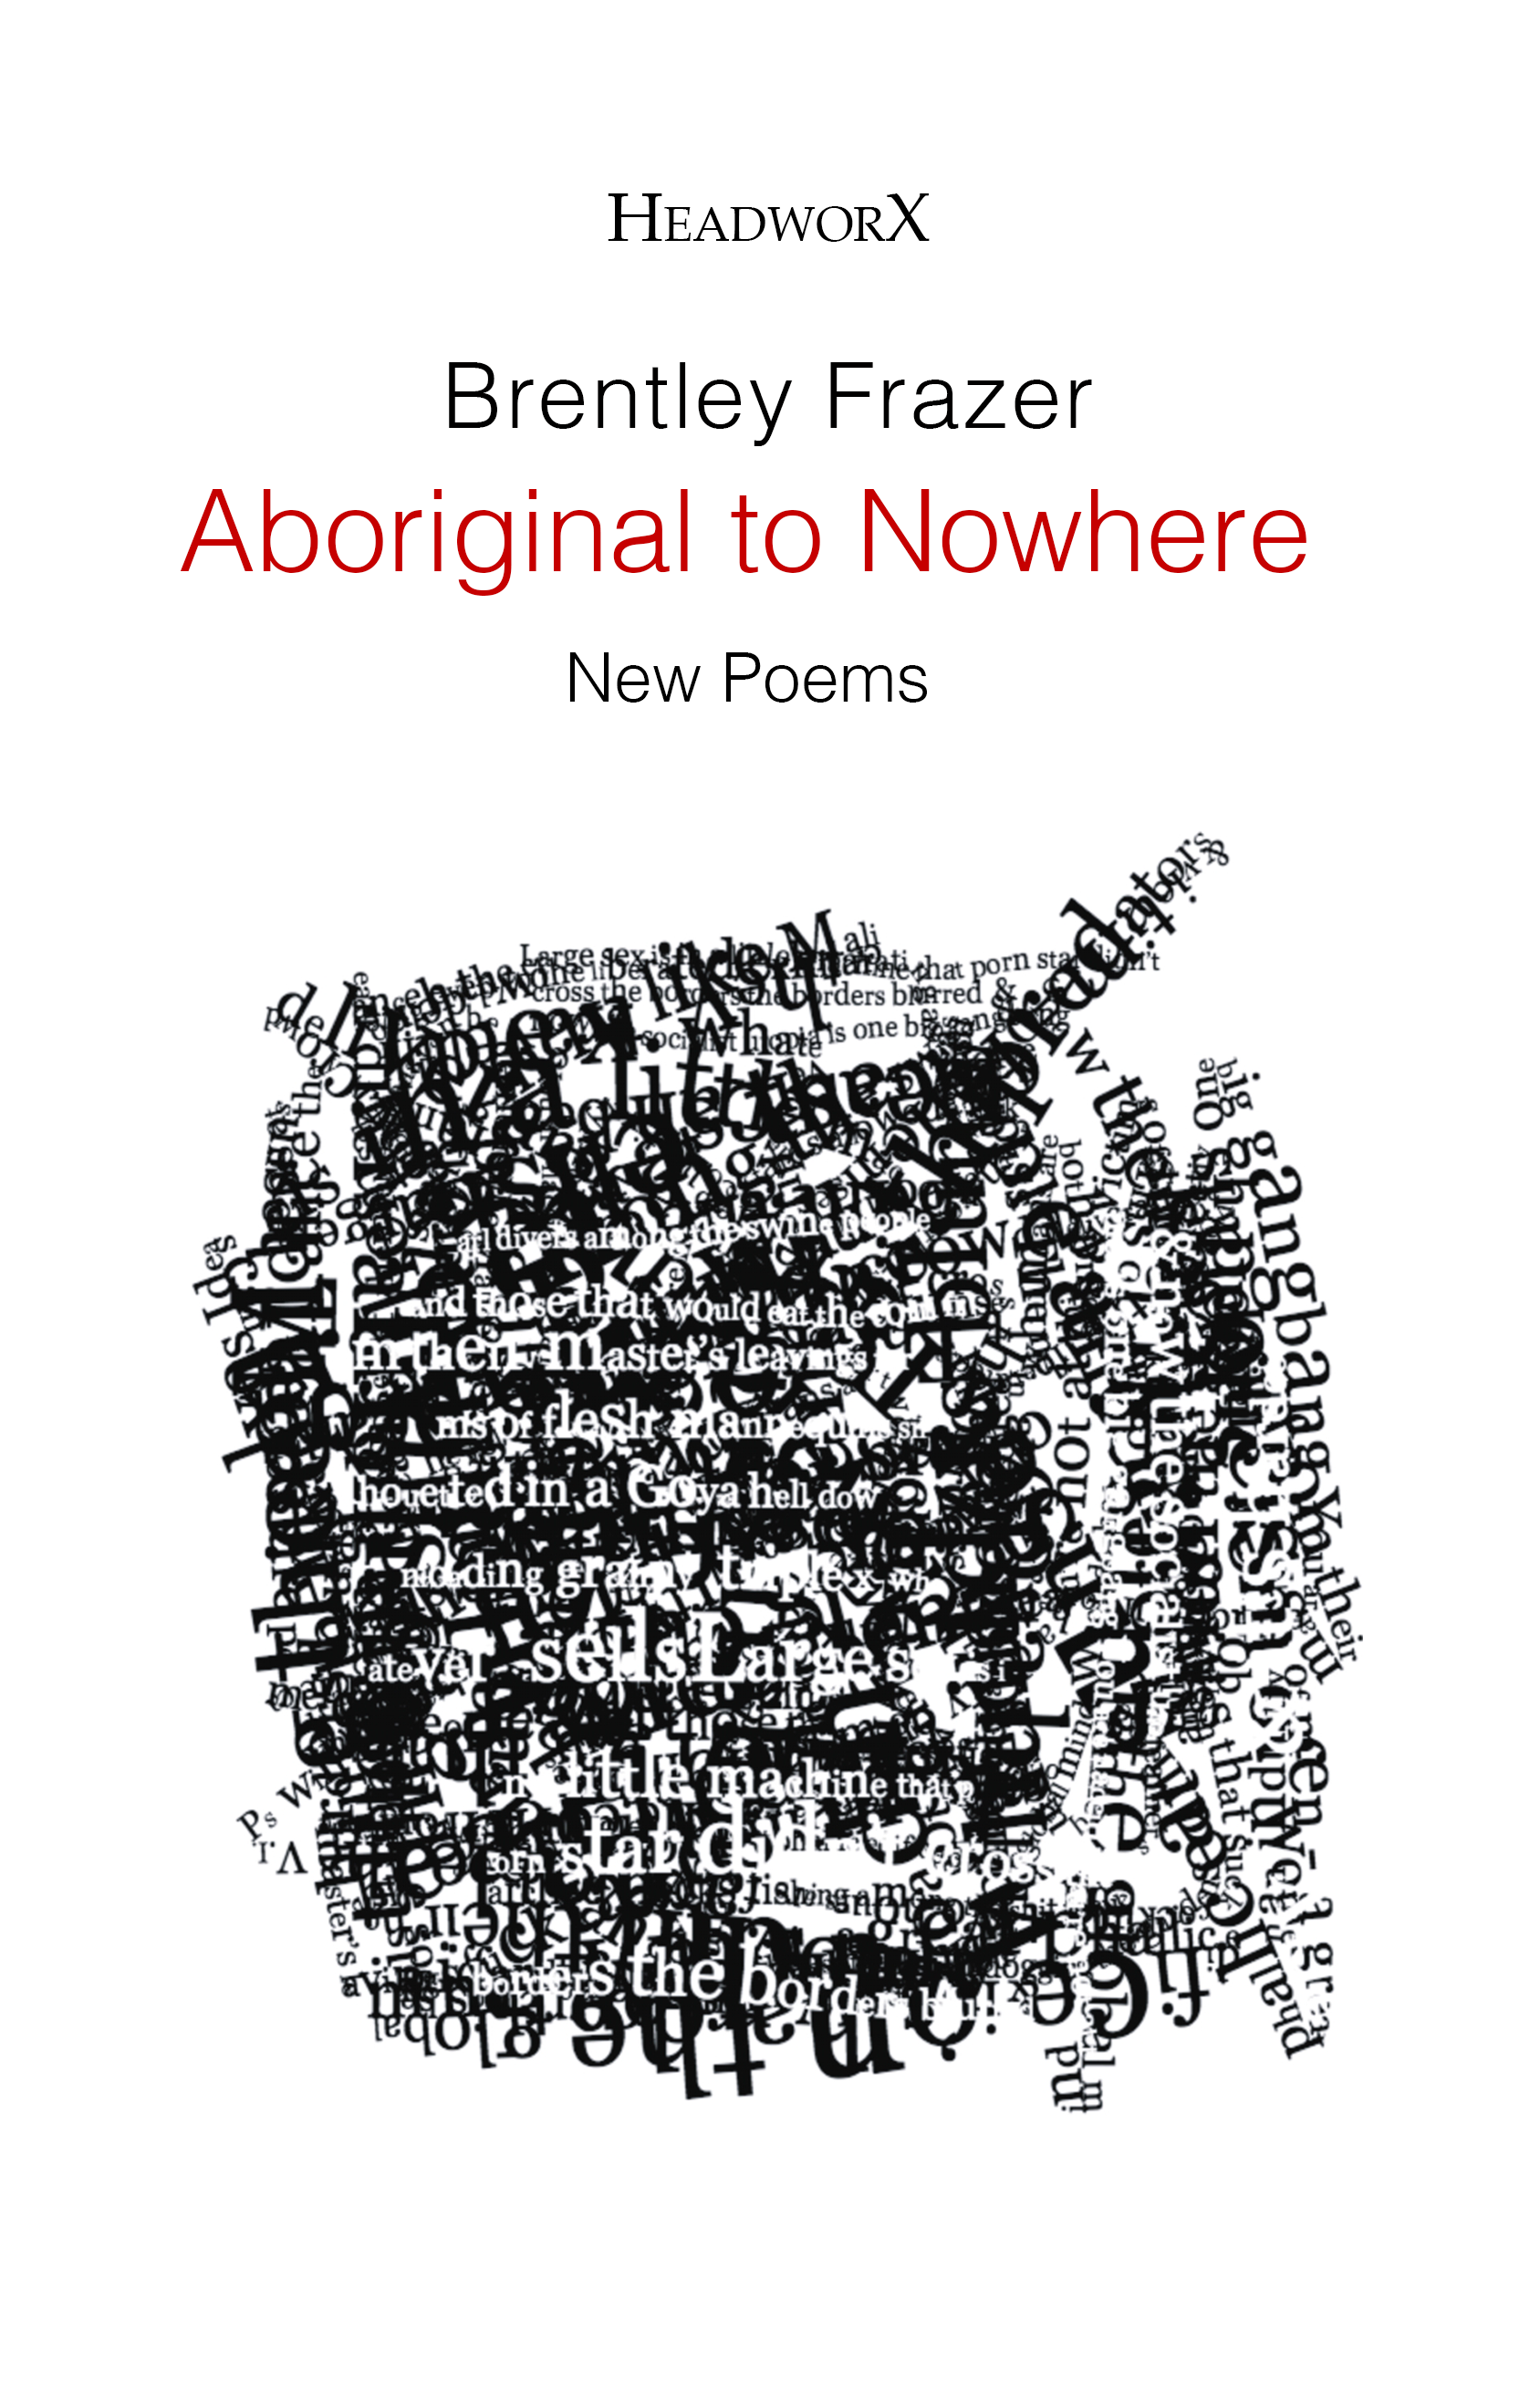 Aboriginal to Nowhere -poems by Brentley Frazer - hires